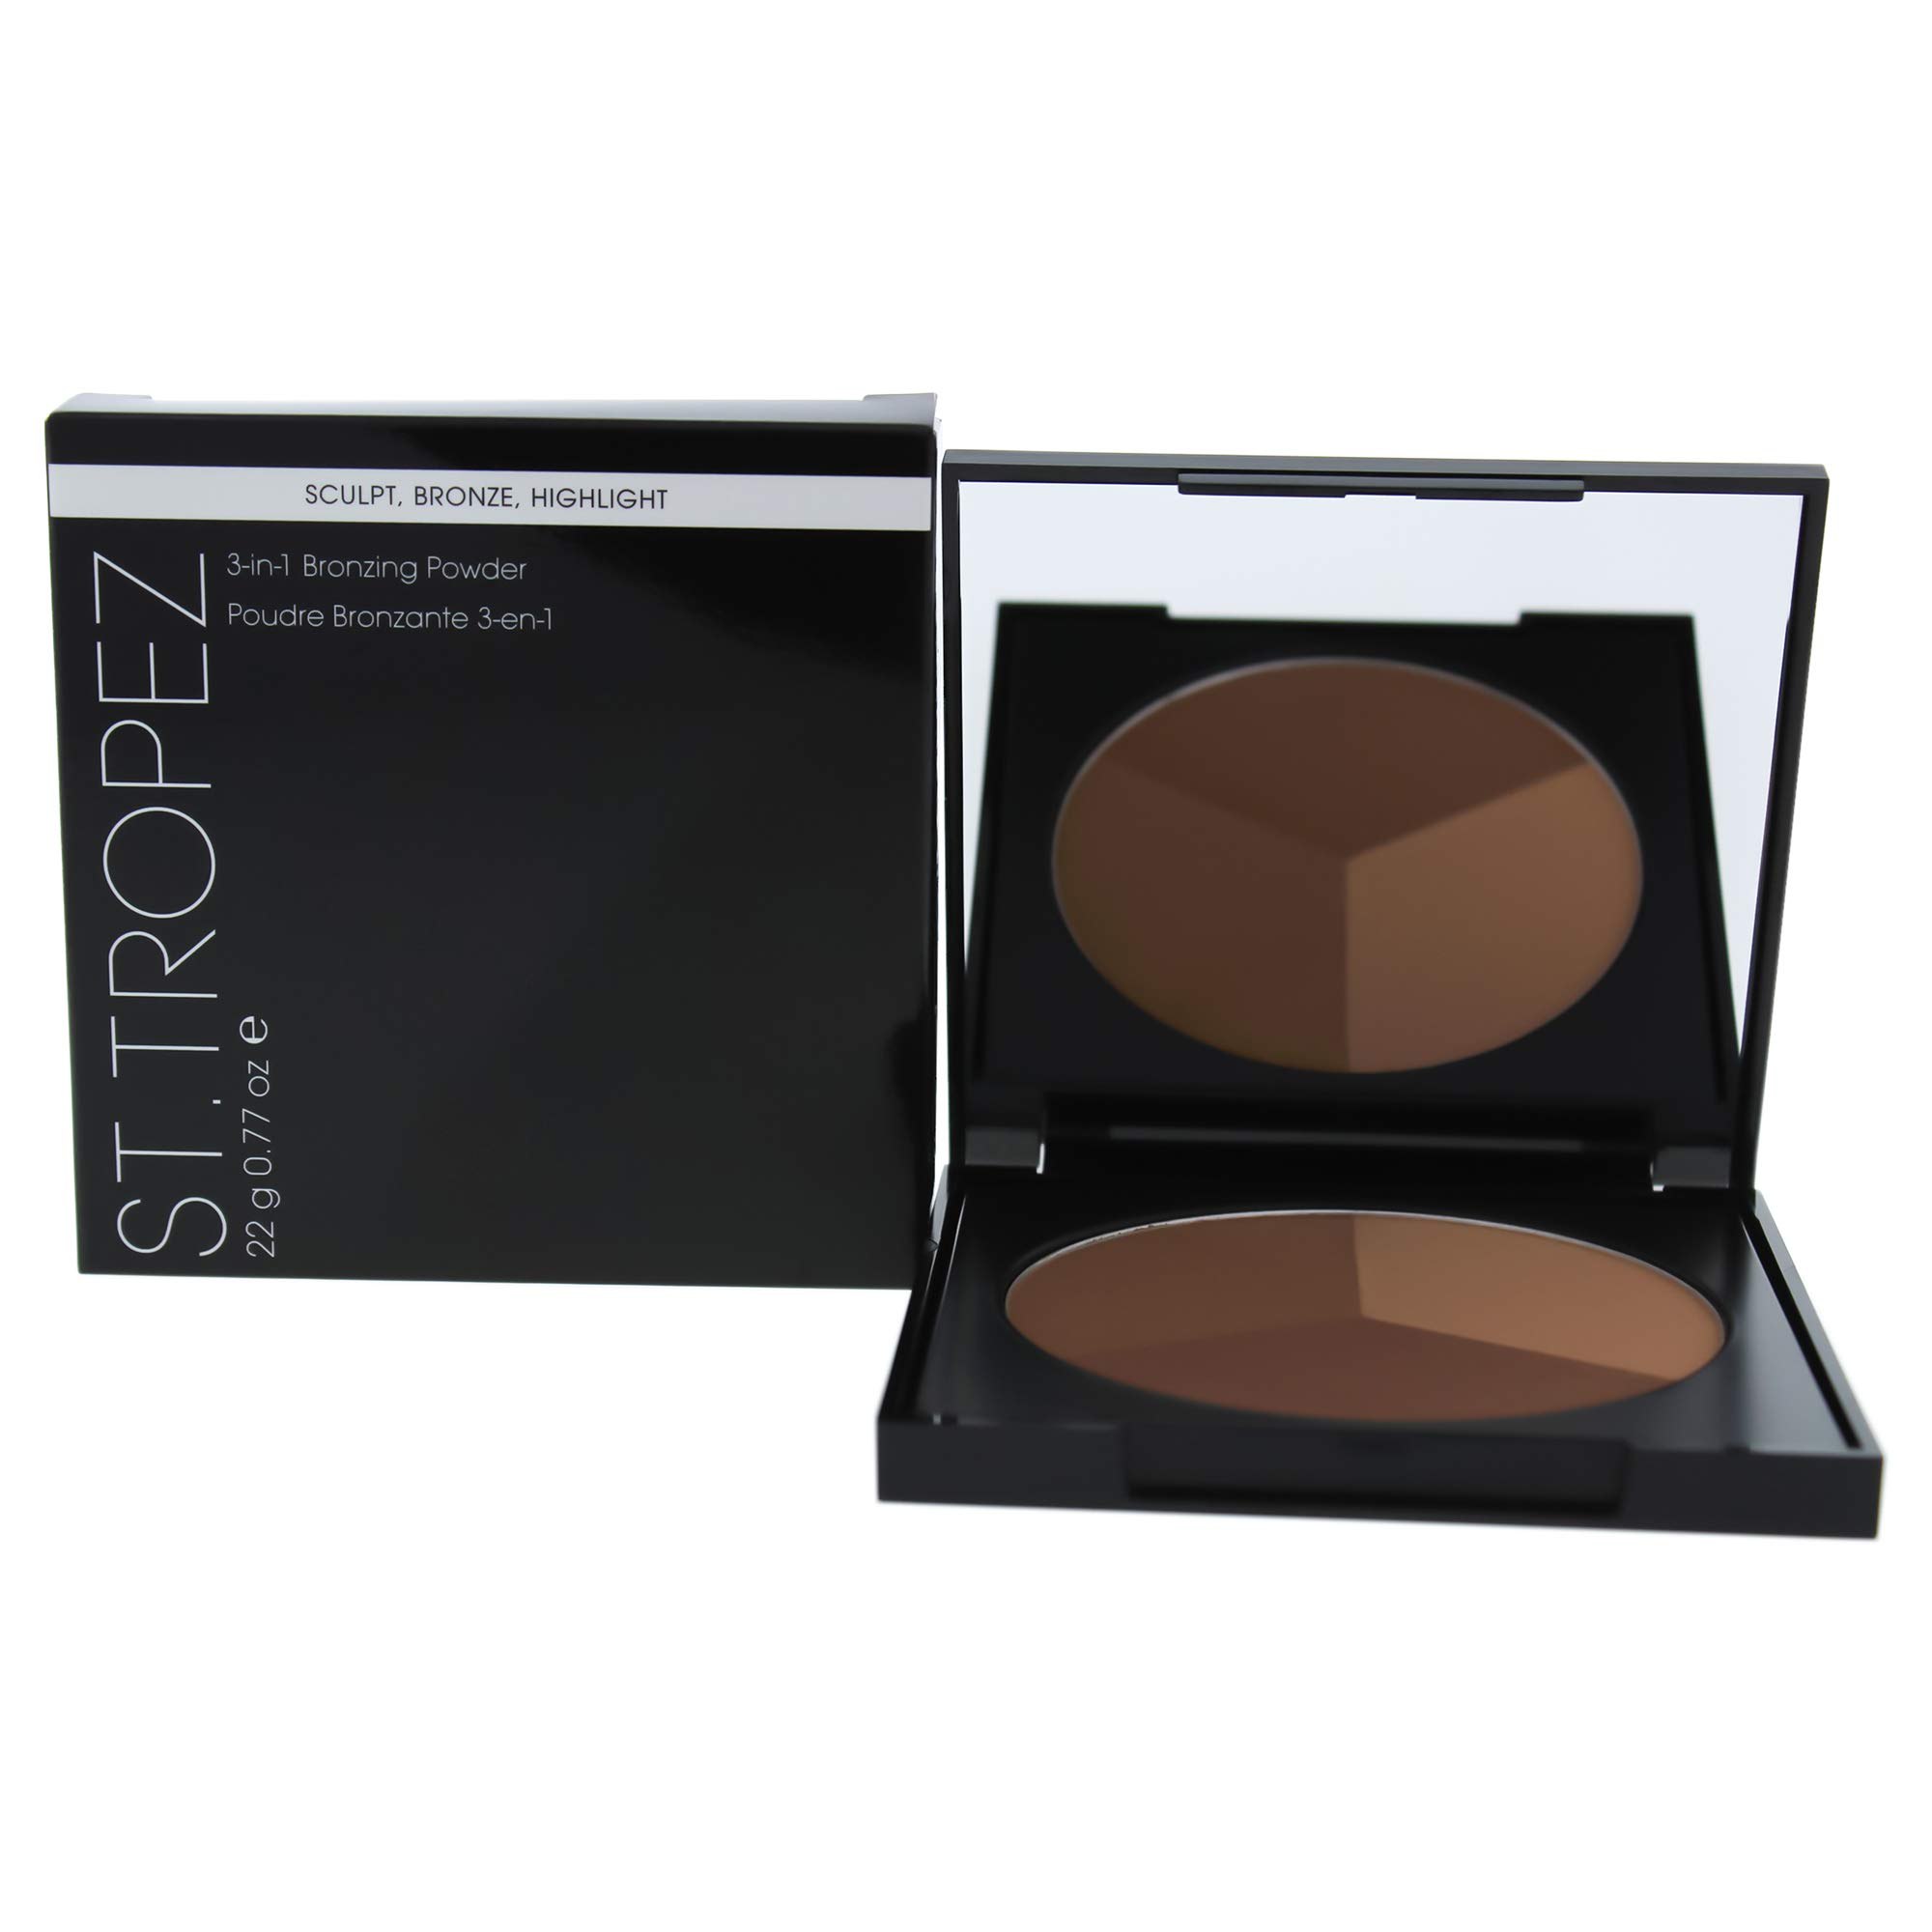 St. Tropez 3 In 1 Bronzing Powder by ST TROPEZ